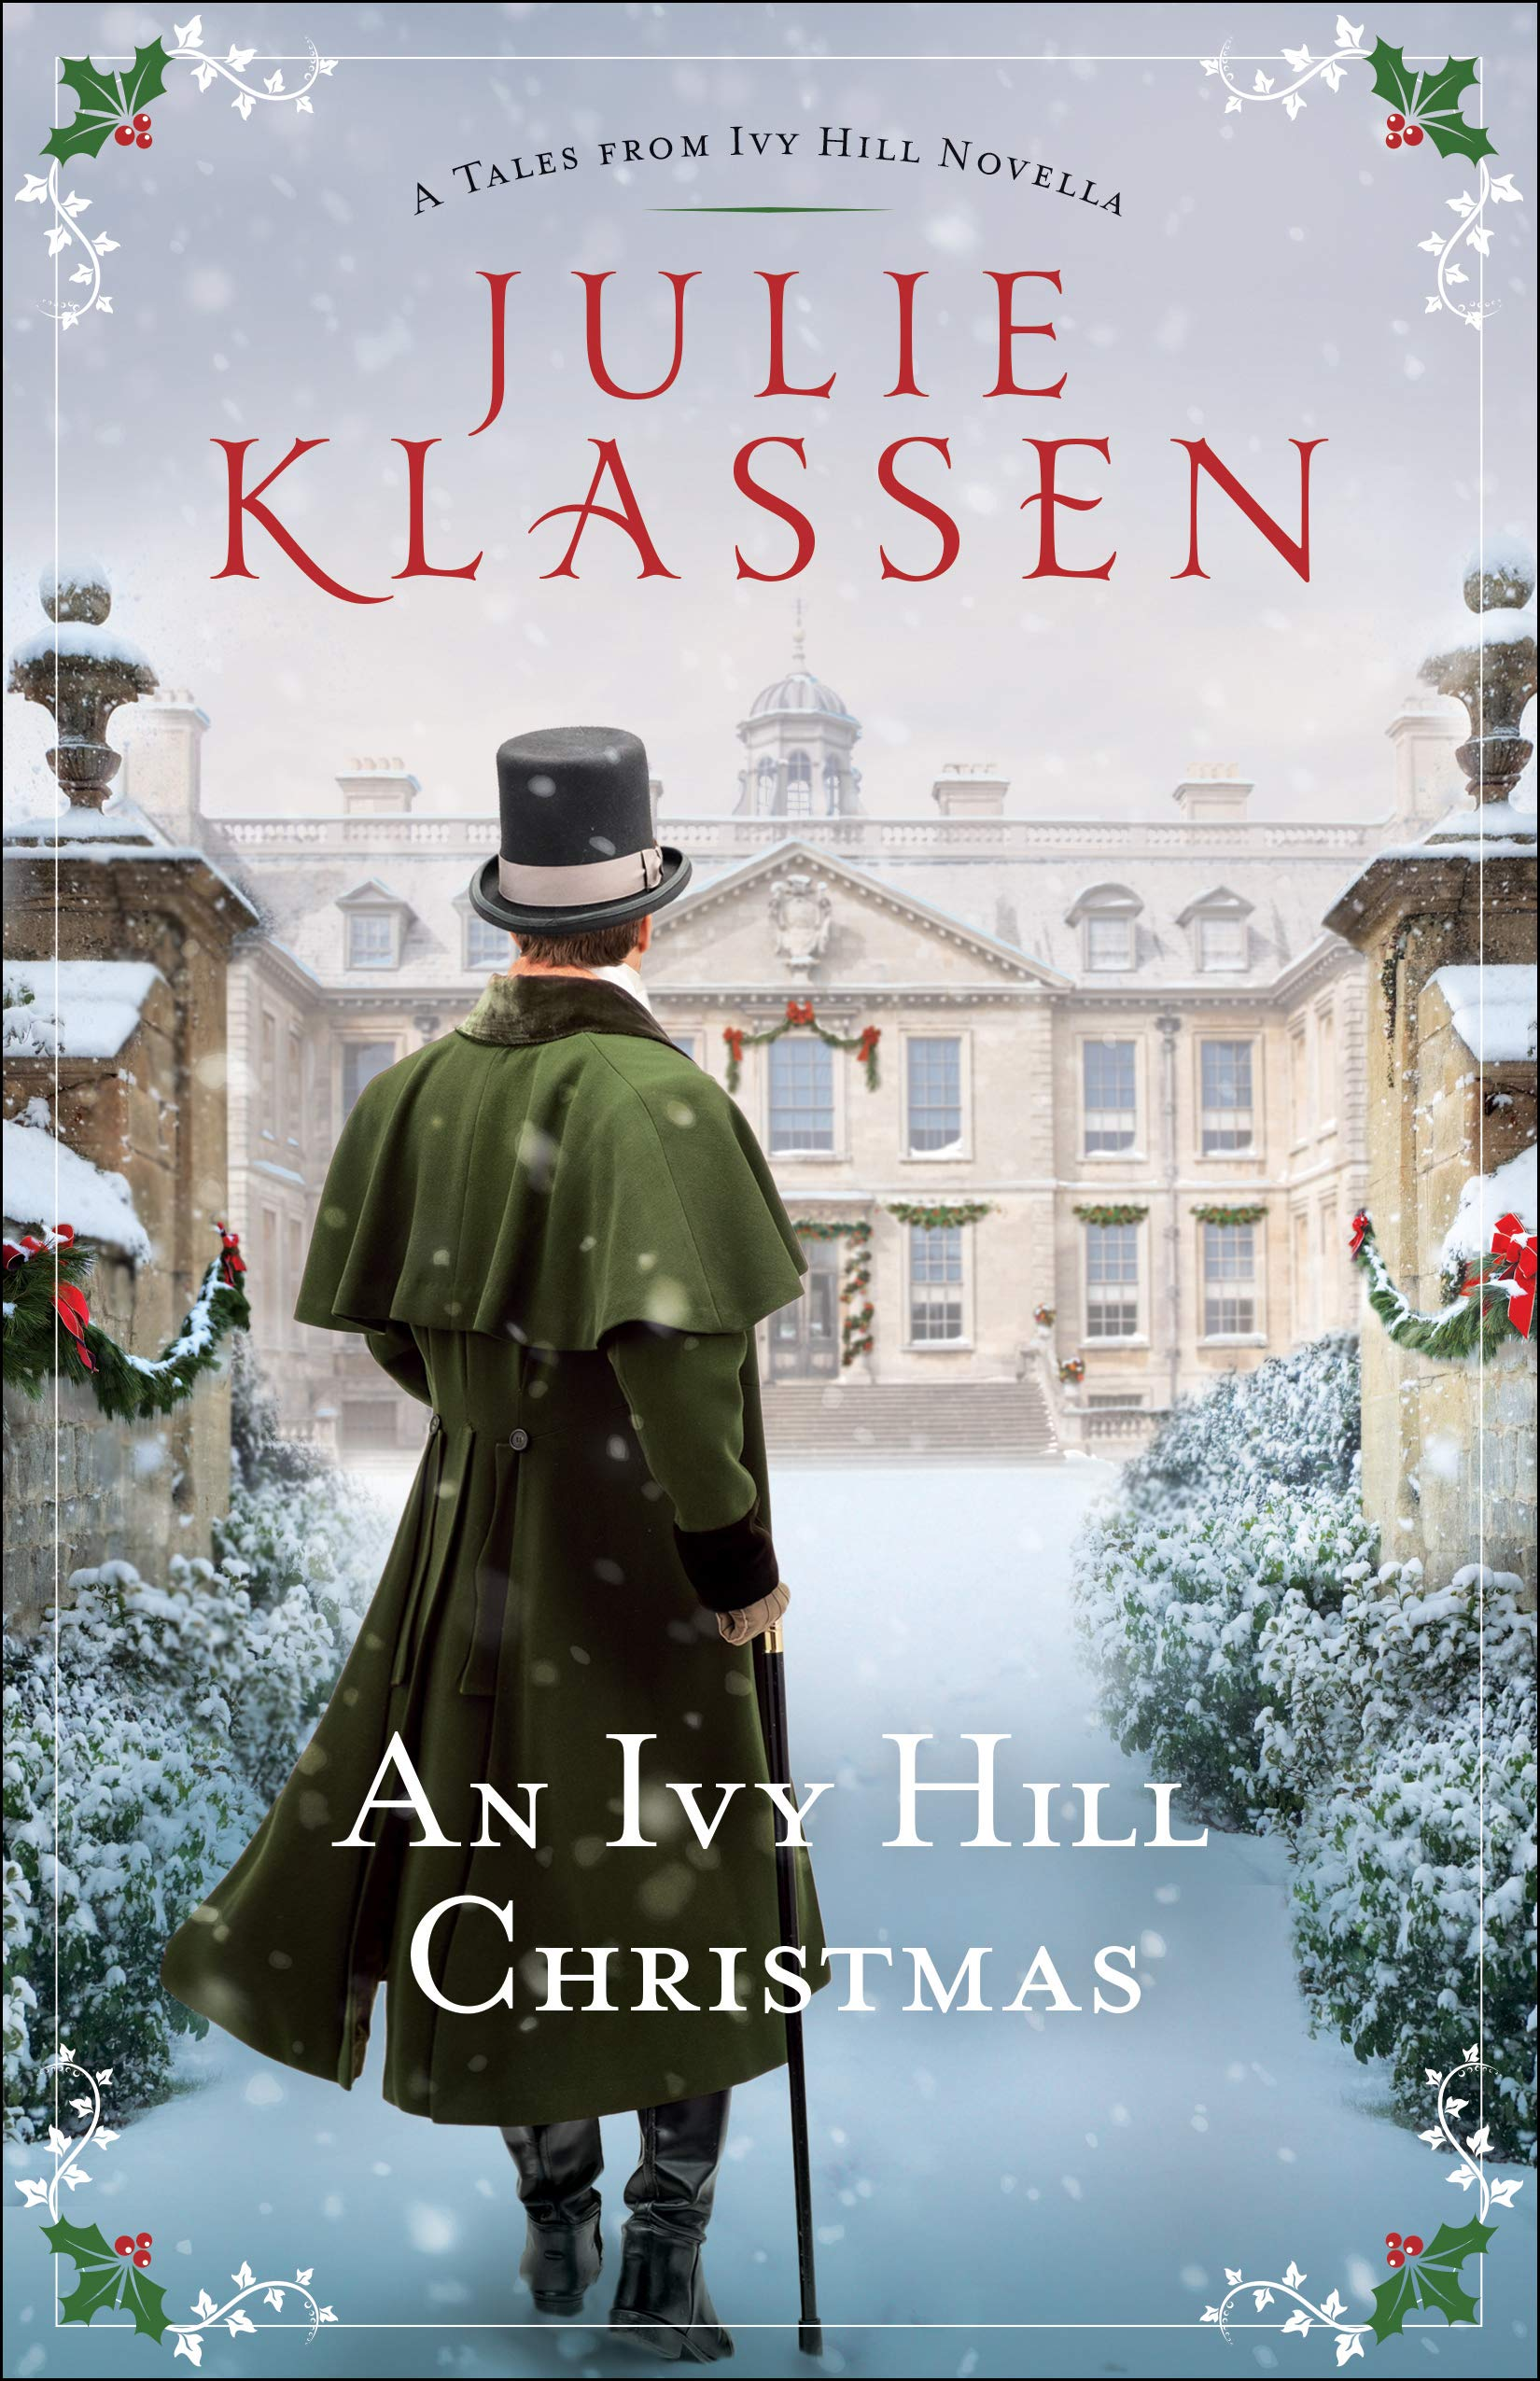 Ivy Hill Christmas by Julie Klassen 2020